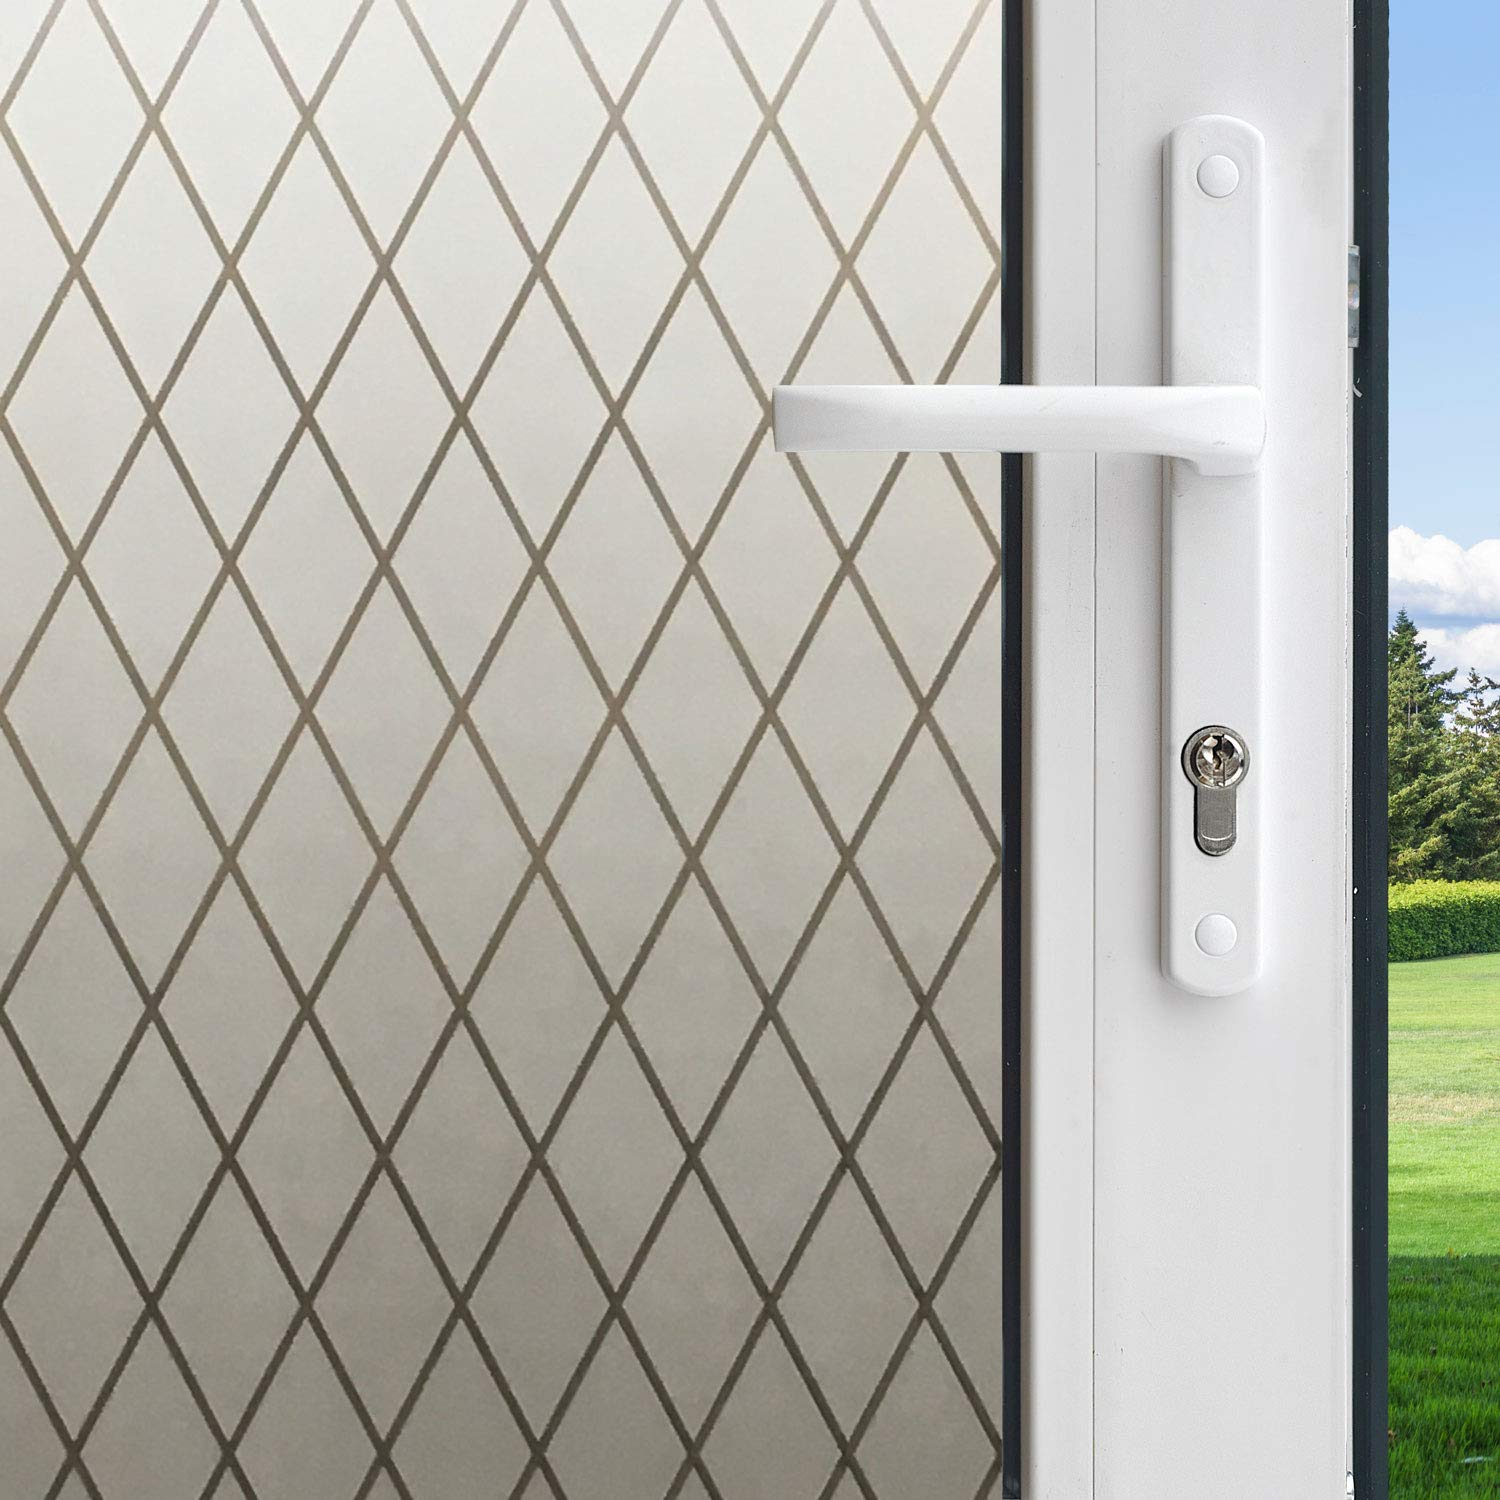 Gila 50188238 Frosted Lattice Decorative Privacy Control Static Cling 36 x 78-INCH (3 6.5 ft.) Window Film, 36in x 78in